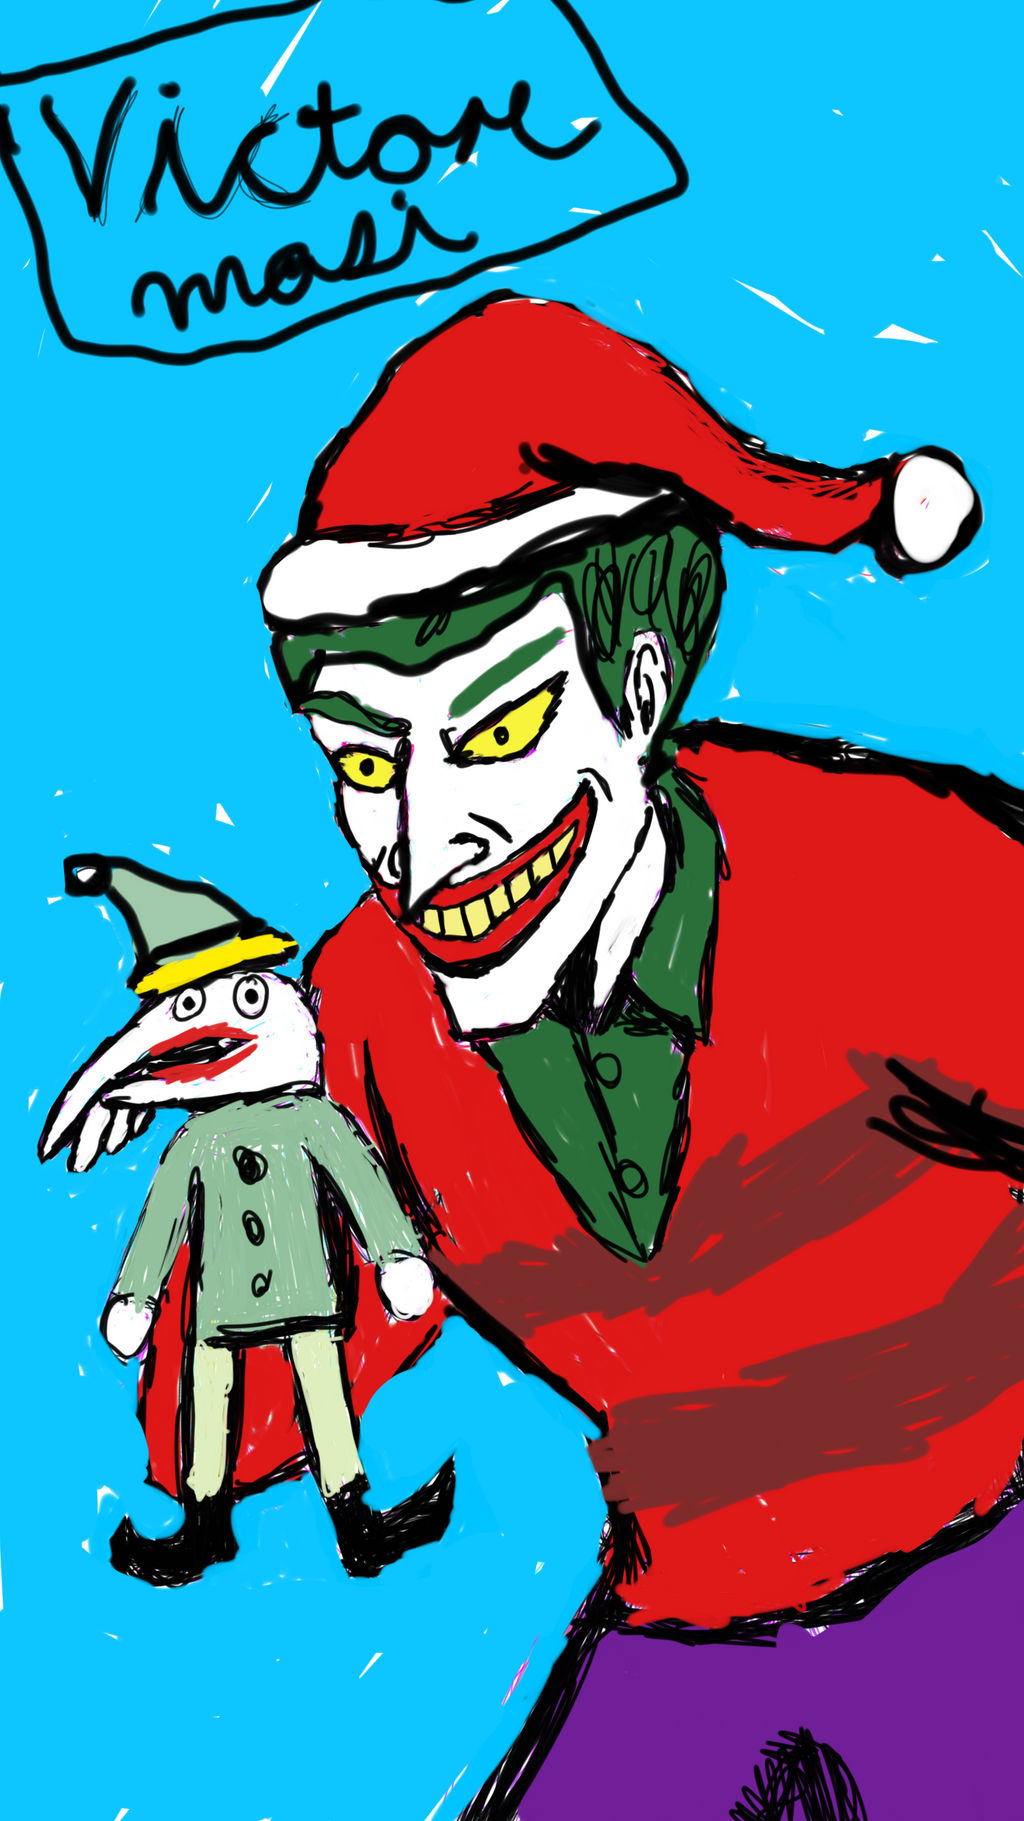 Christmas With The Joker.Christmas With The Joker By Theravensbastard39 On Deviantart